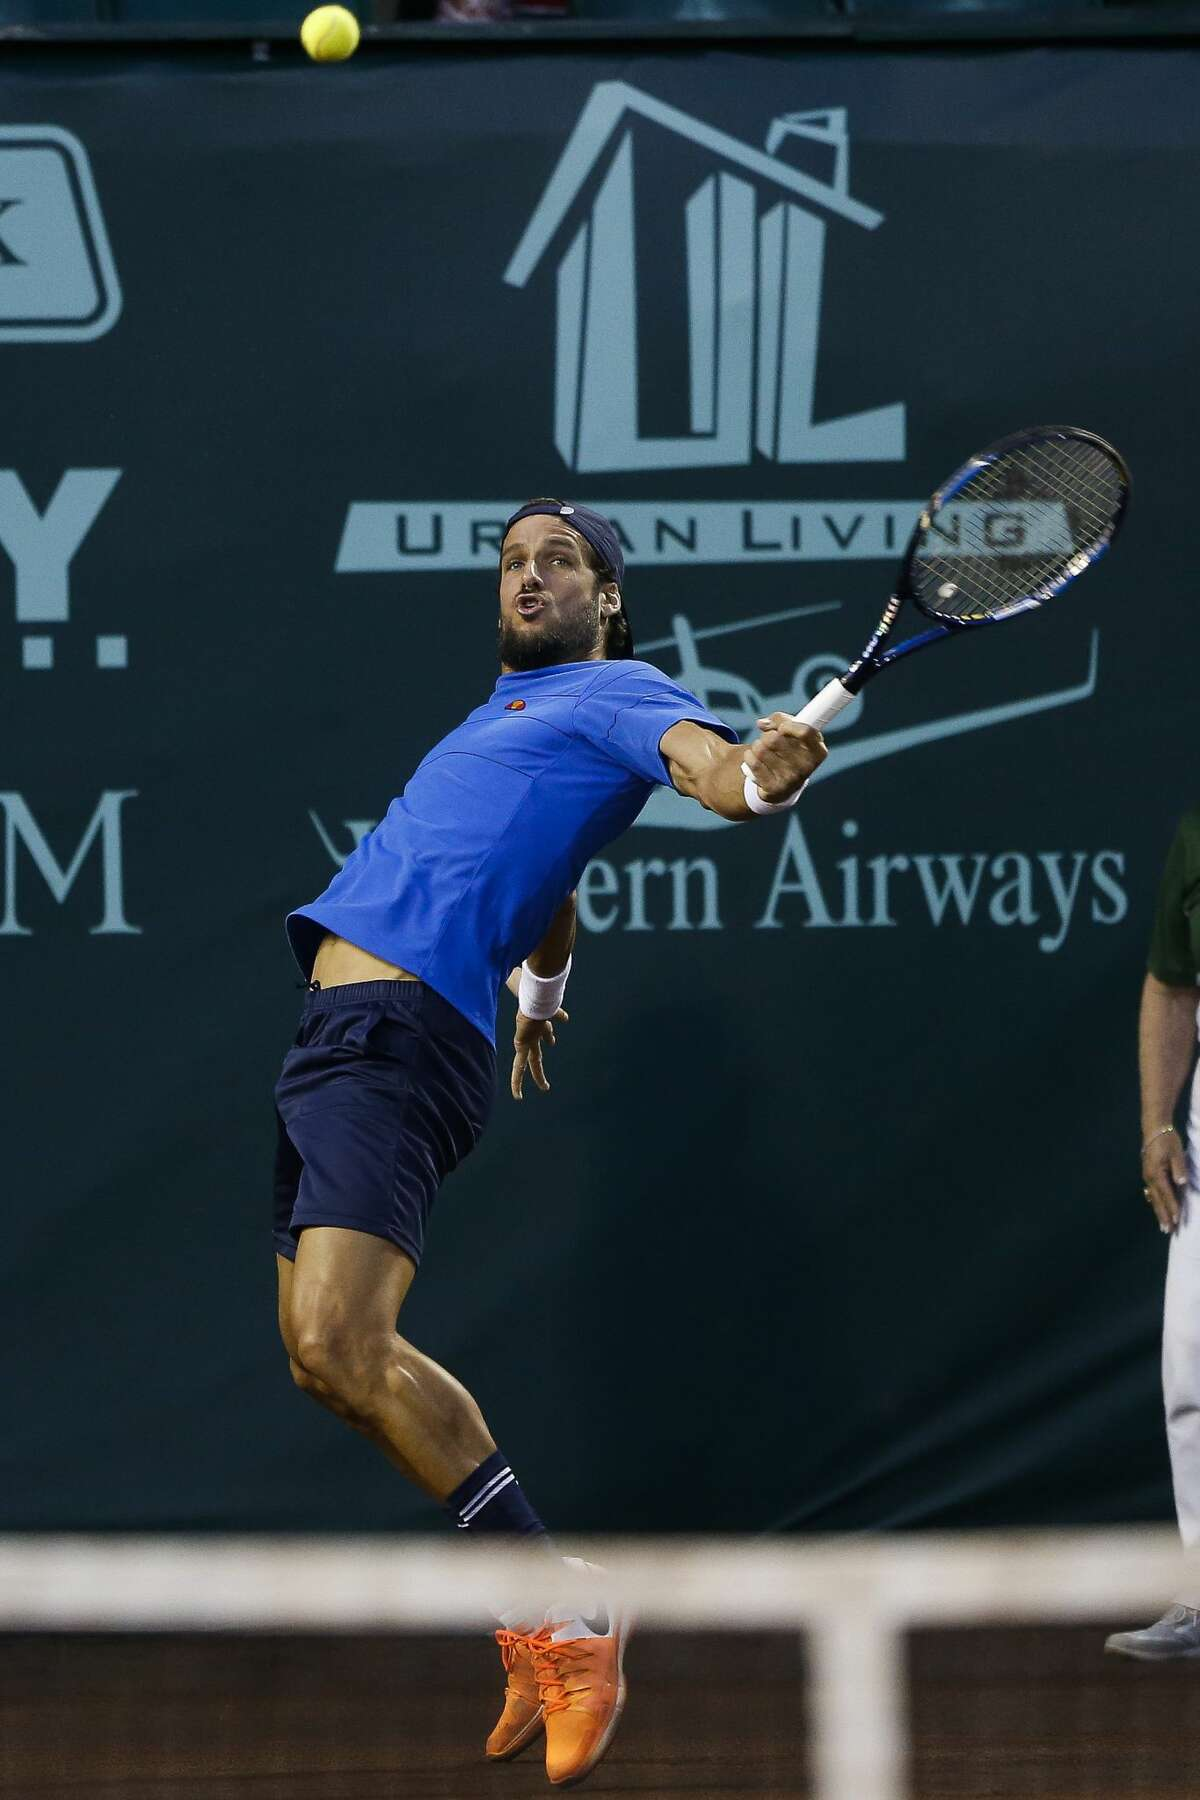 Feliciano Lopez returns the ball as he takes on Jack Sock in the quarterfinals of the US Men's Clay Court Championship Friday, April 14, 2017 in Houston. ( Michael Ciaglo / Houston Chronicle)